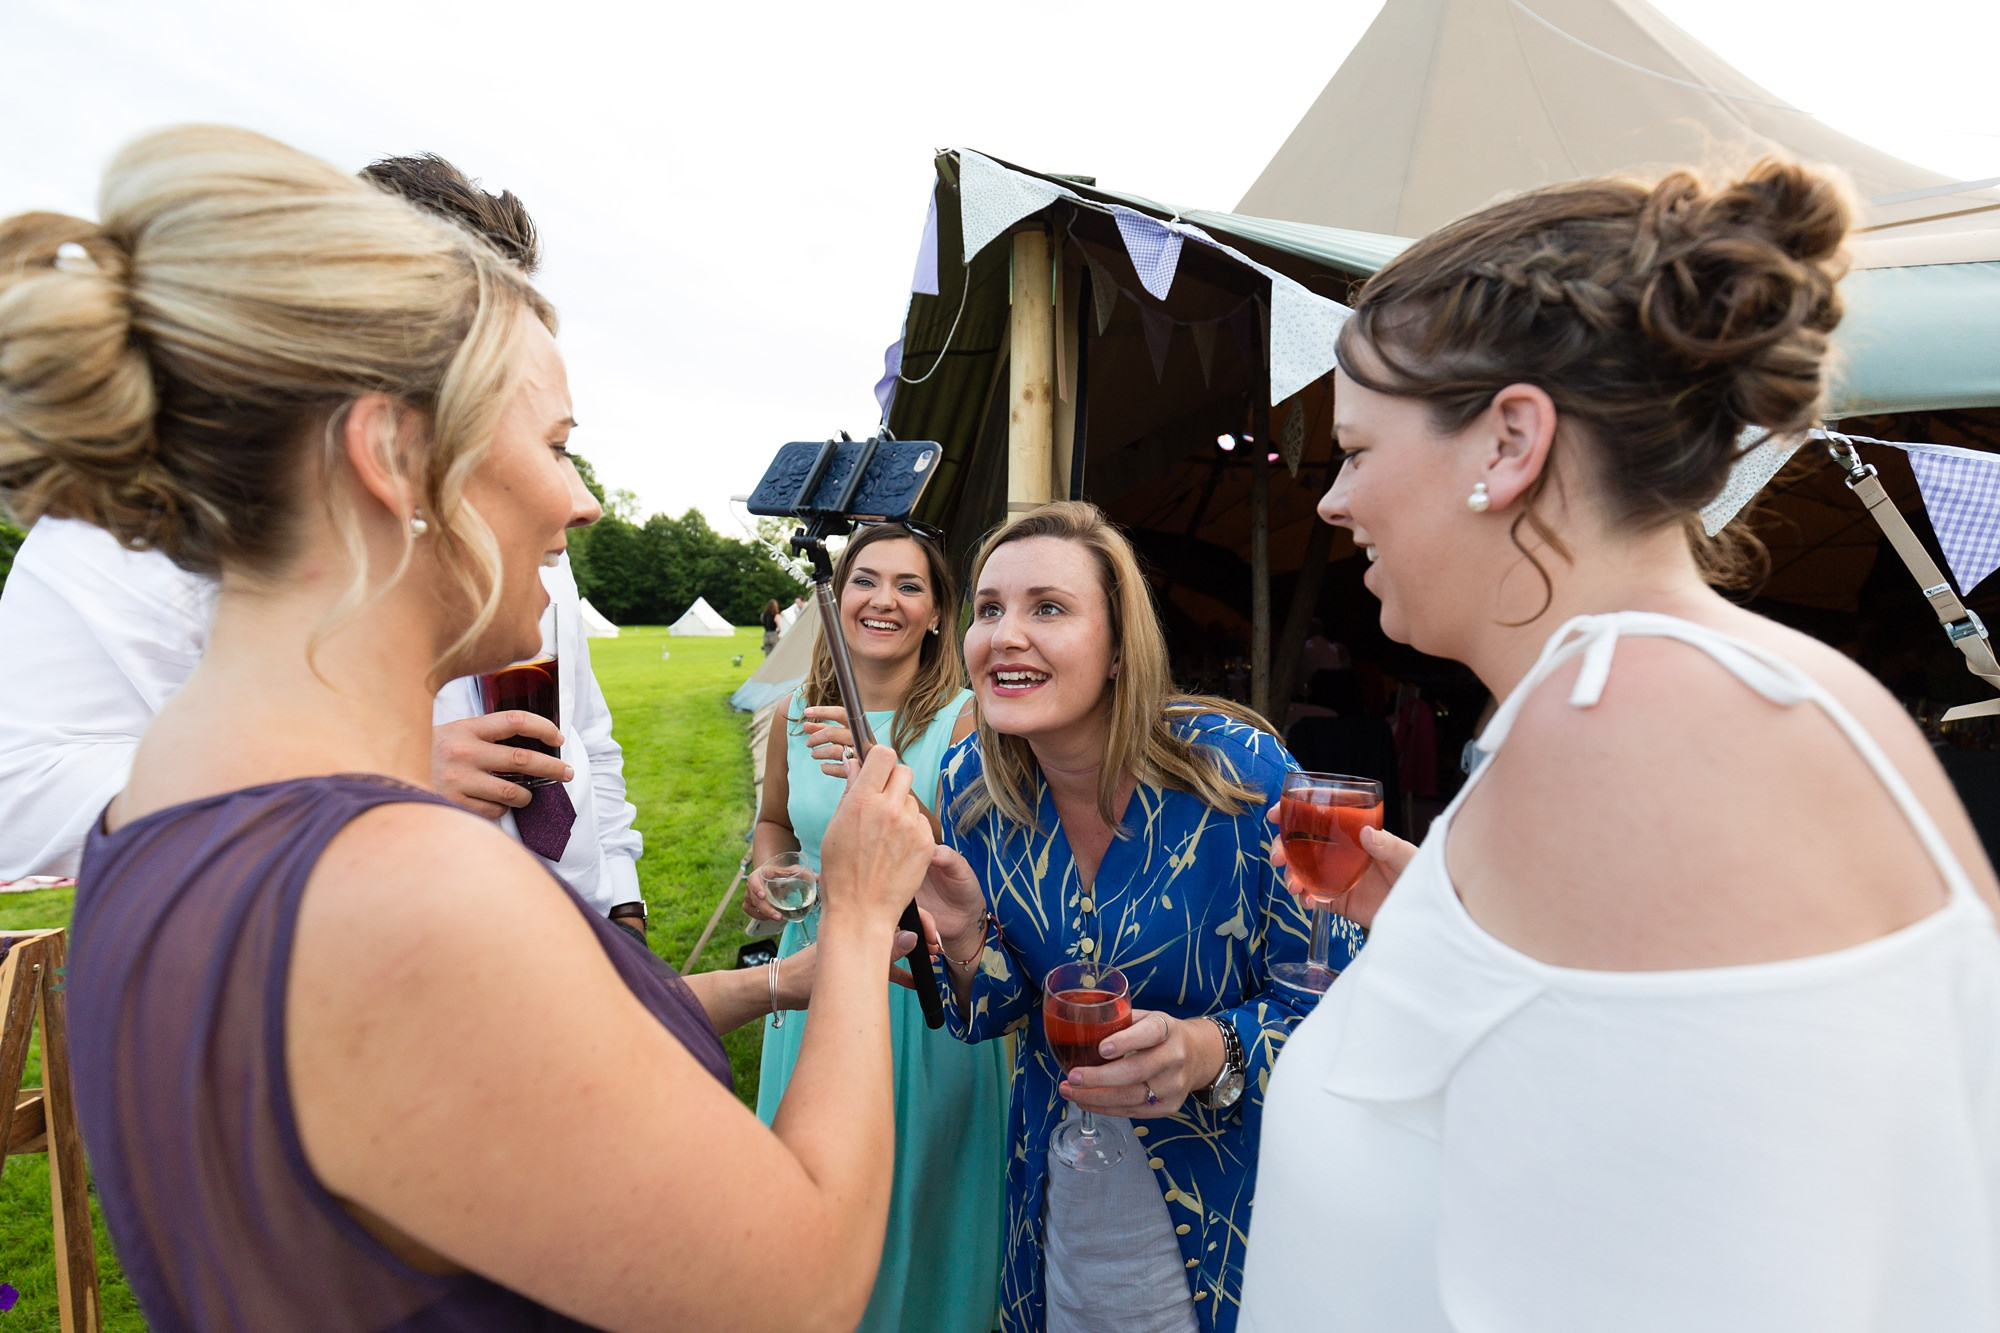 Bell Hall Wedding Photography guests having a great time